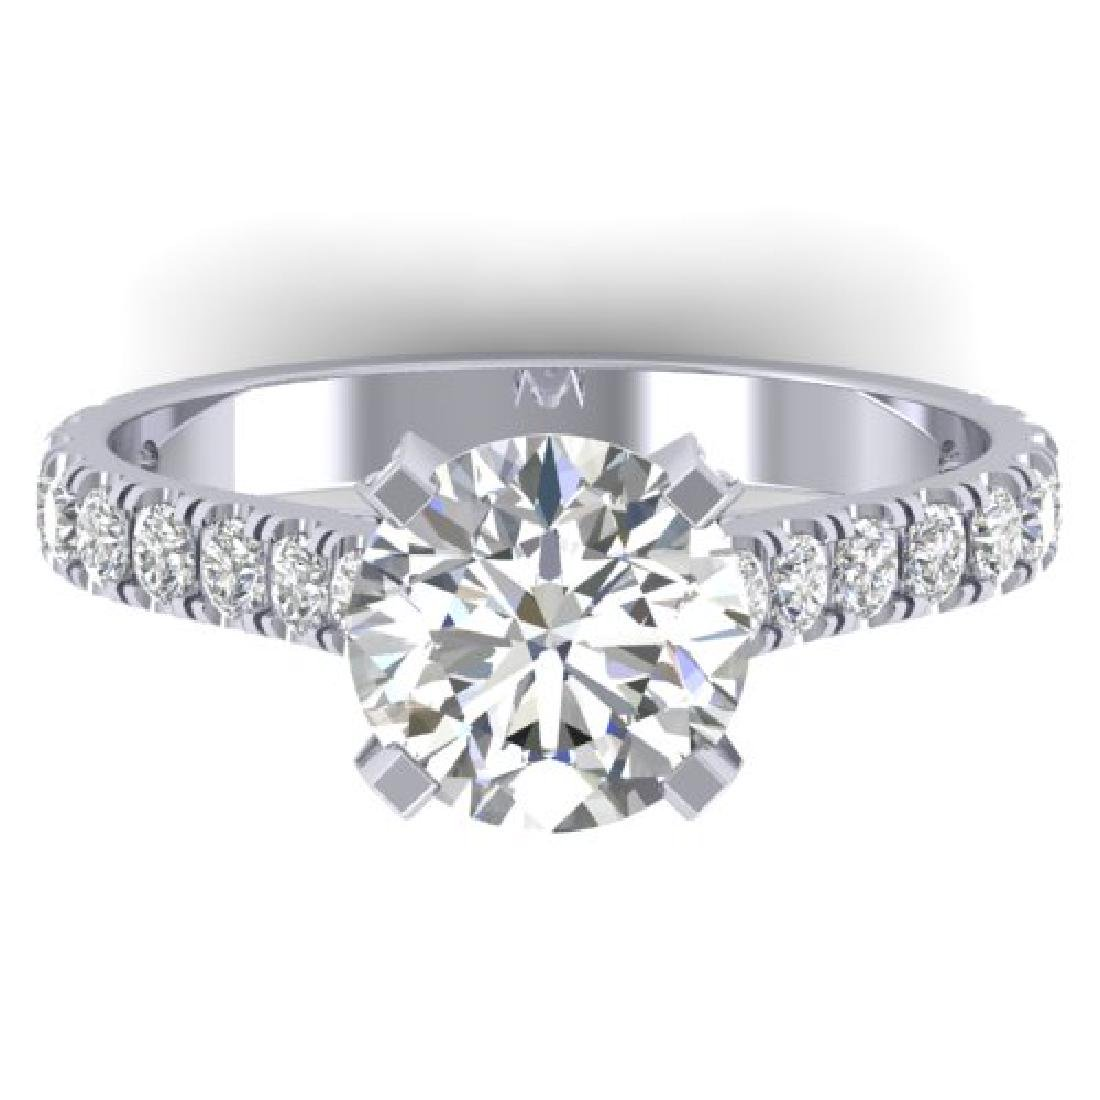 2.4 CTW Certified VS/SI Diamond Solitaire Art Deco Ring